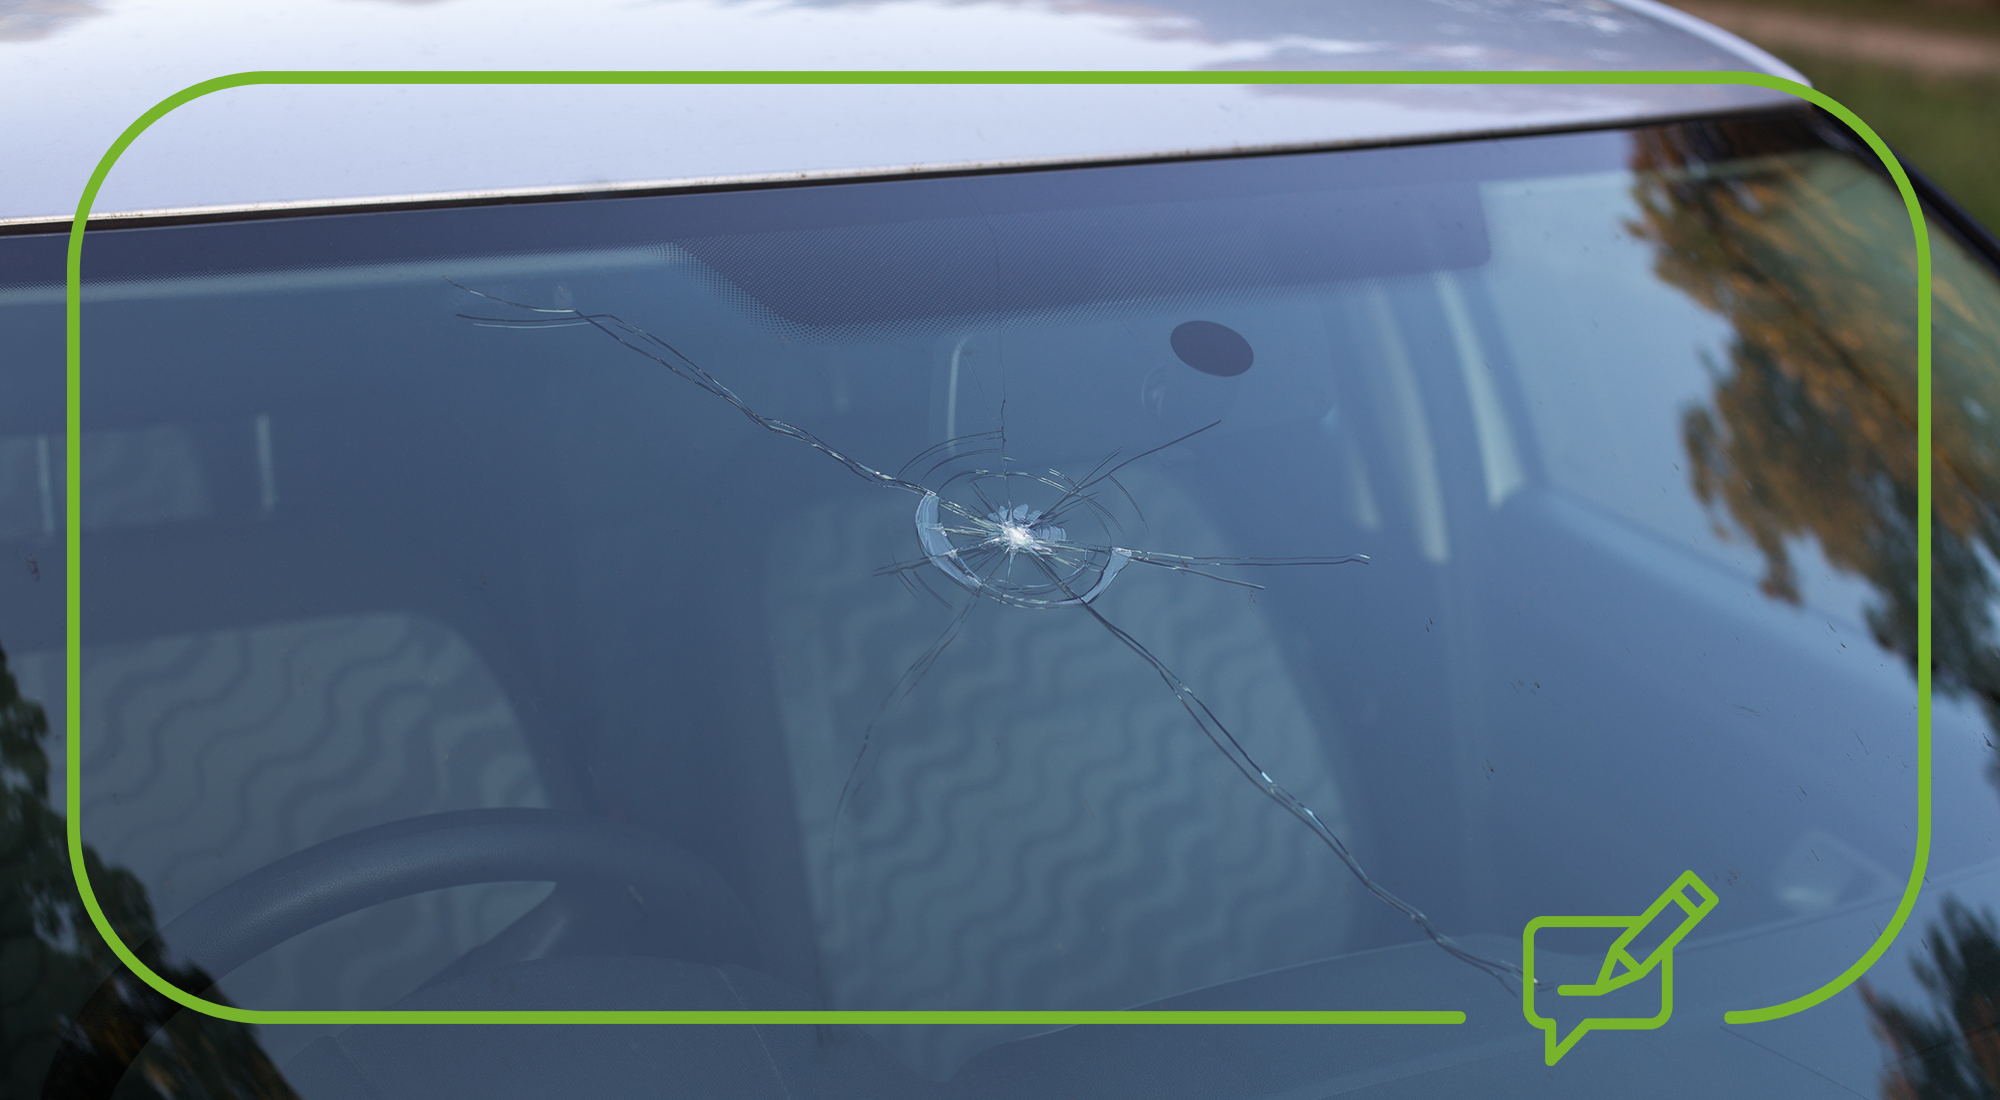 Driving with a cracked windscreen: Rules and risks explained